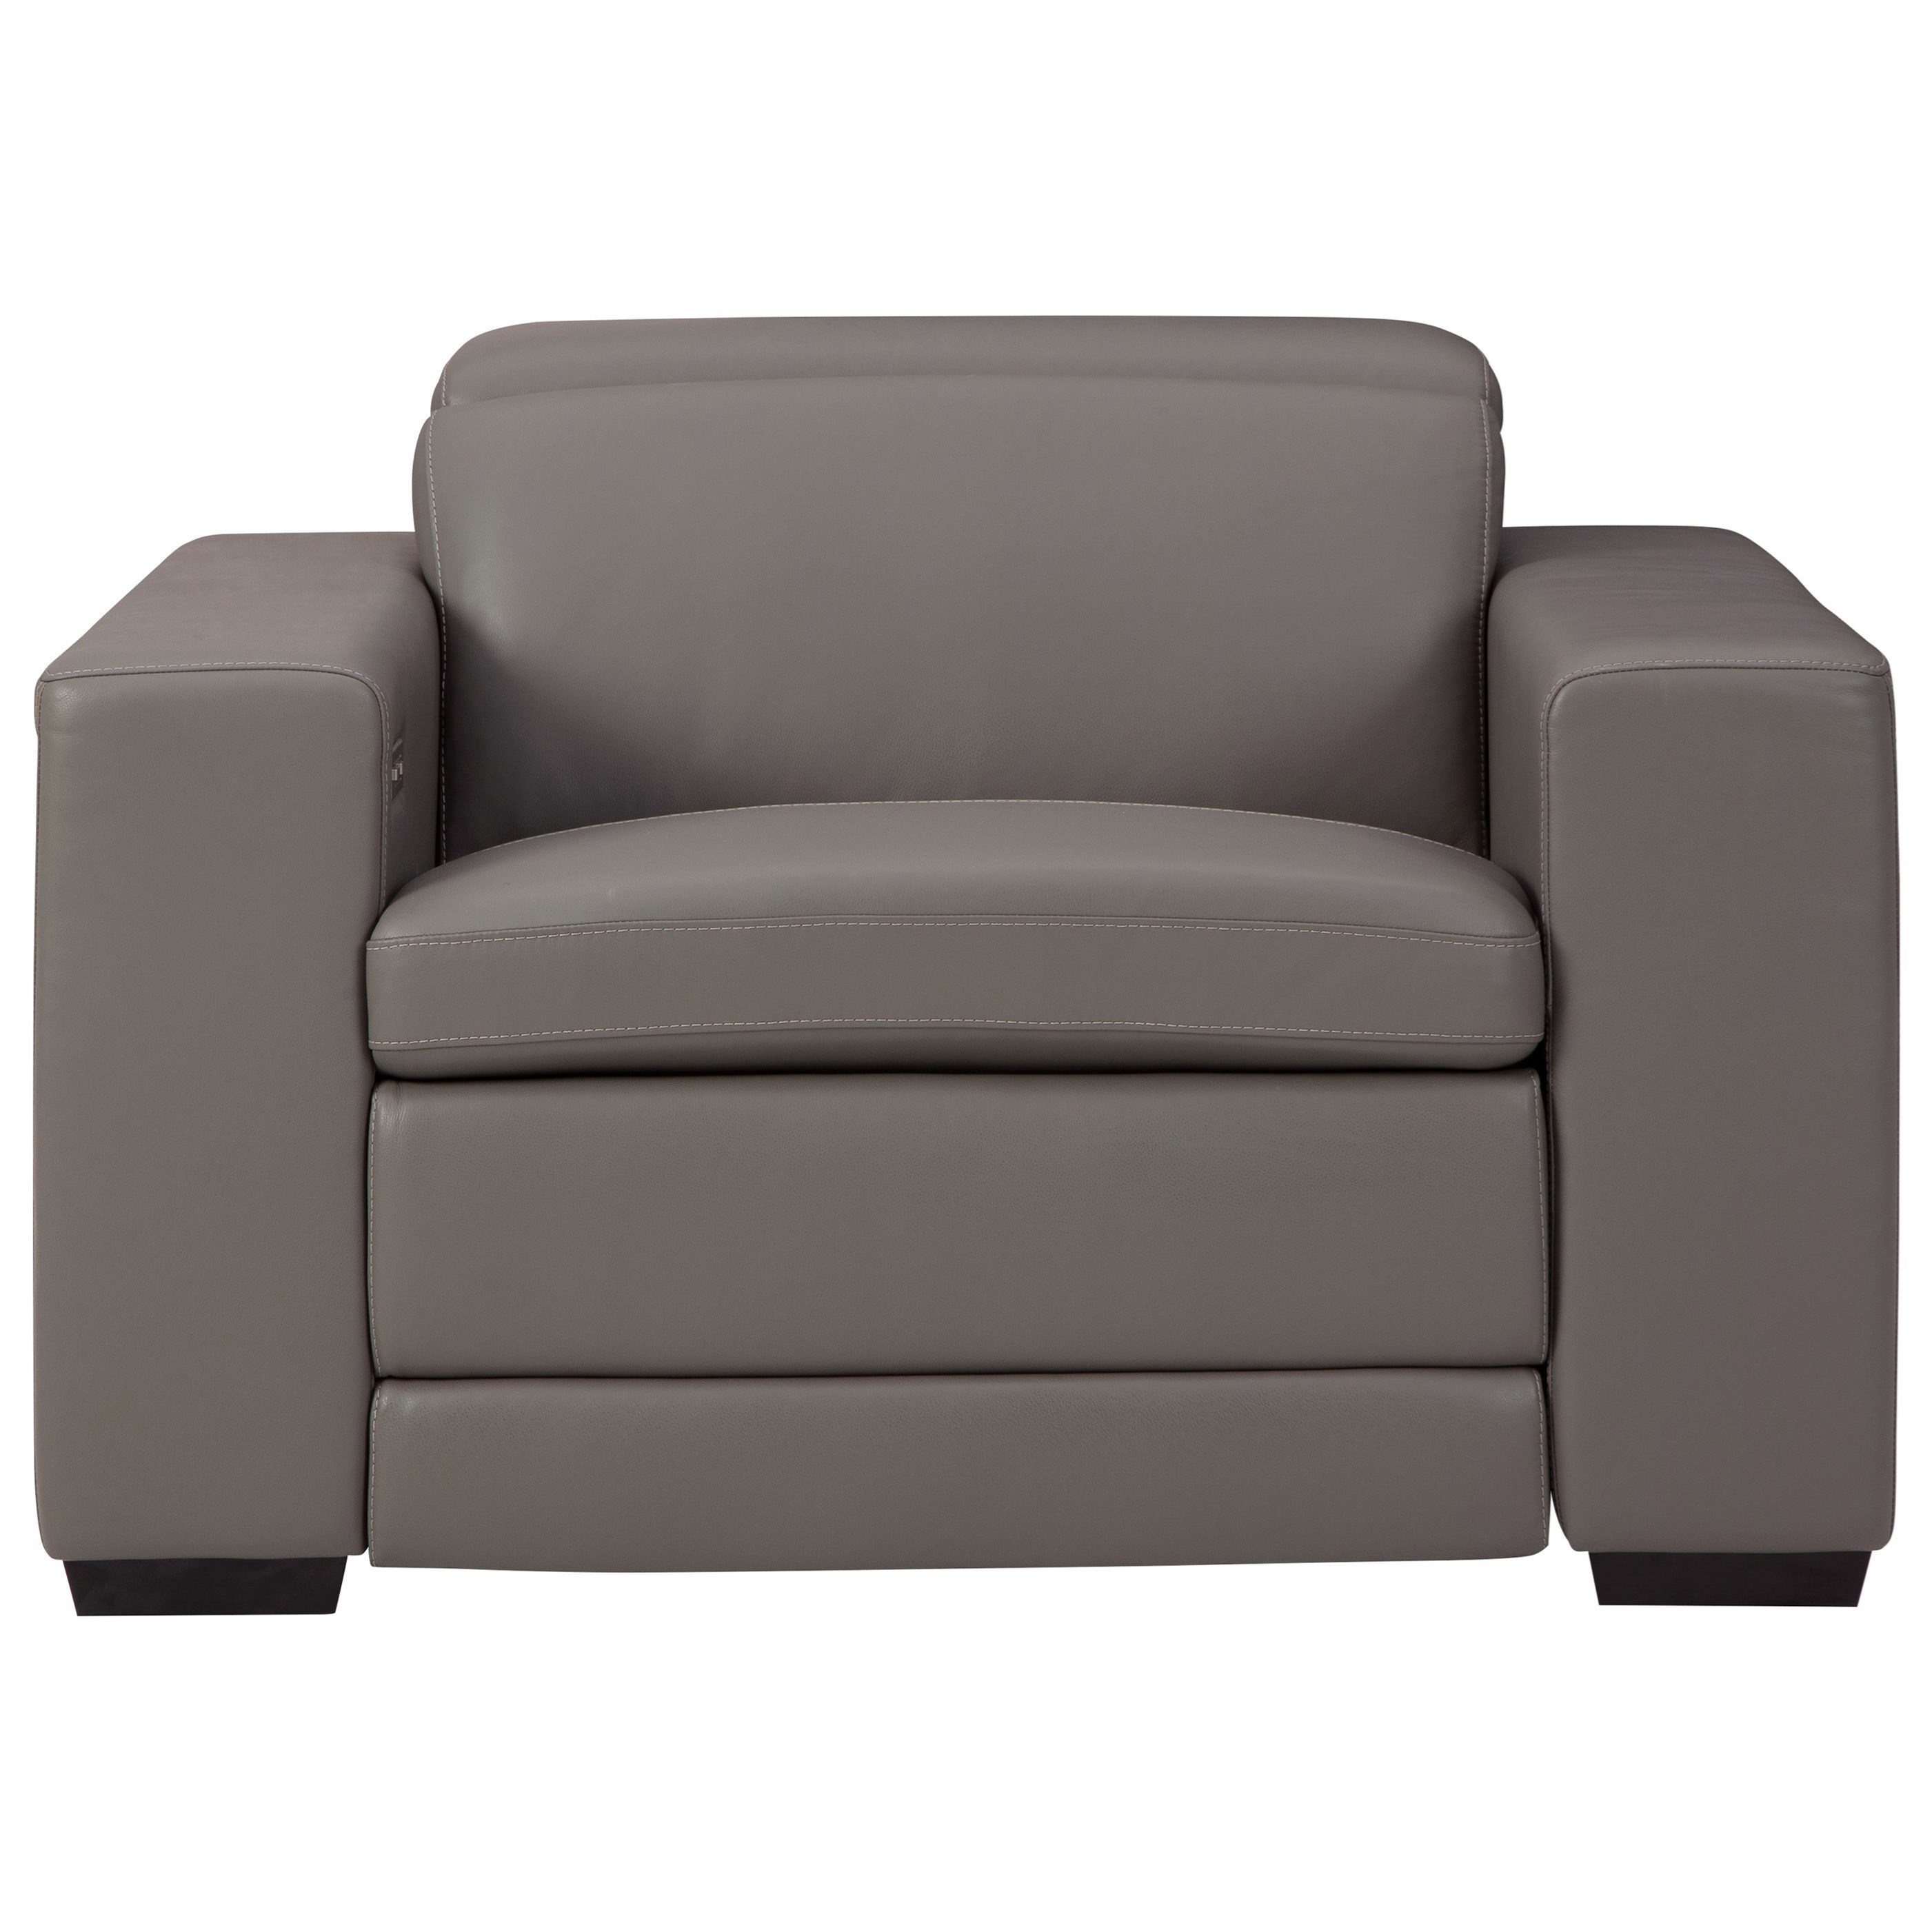 Texline Power Recliner w/ Adj Headrest by Signature Design by Ashley at Beck's Furniture